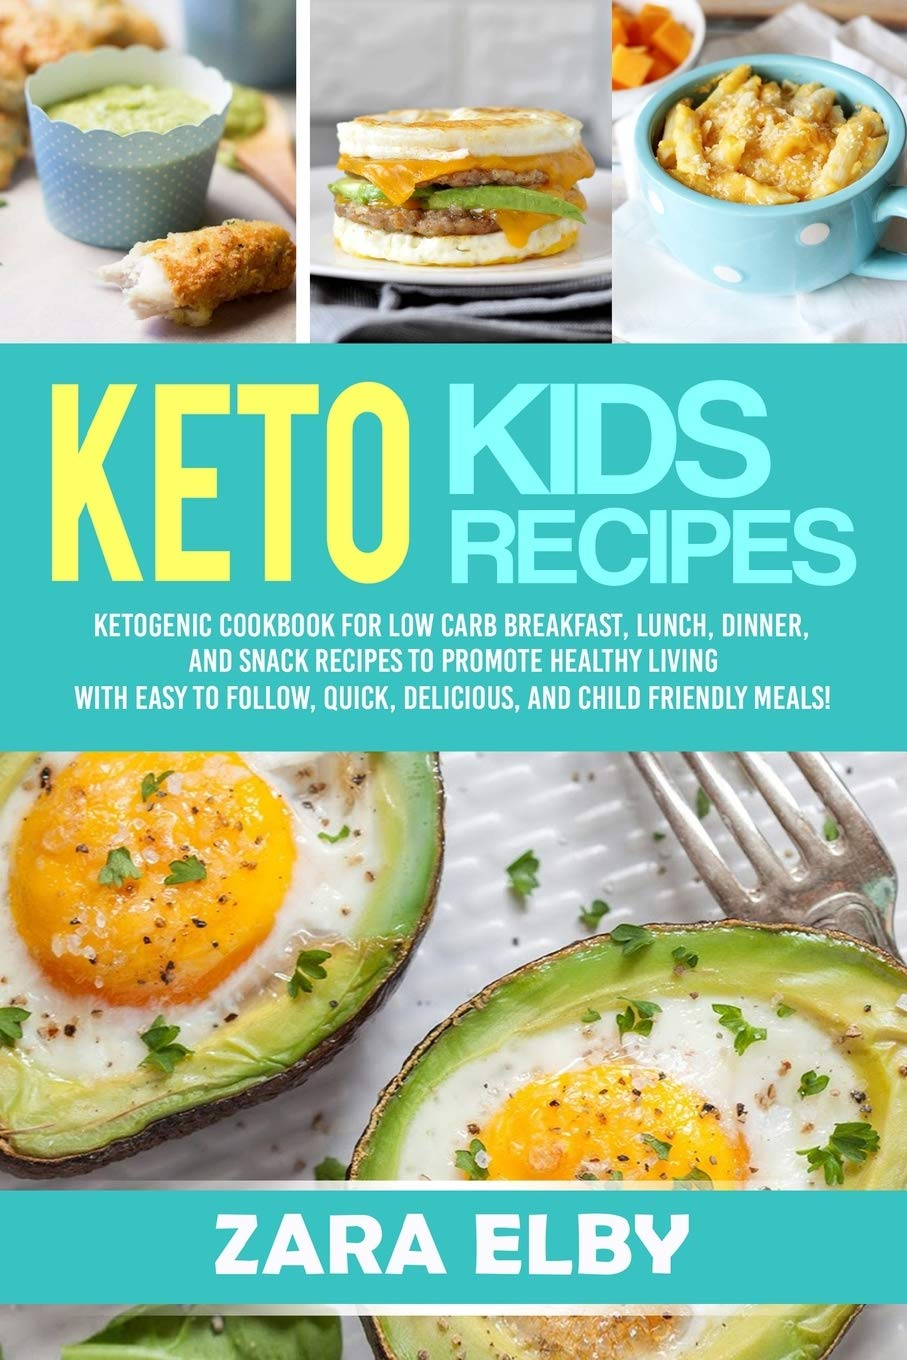 Amazon Com Keto Kids Ketogenic Cookbook For Low Carb Breakfast Lunch Dinner And Snack Recipes To Promote Healthy Living With Easy To Follow Quick Delicious And Child Friendly Meals 9781657982727 Elby Zara Books,Types Of Hamsters With Pictures